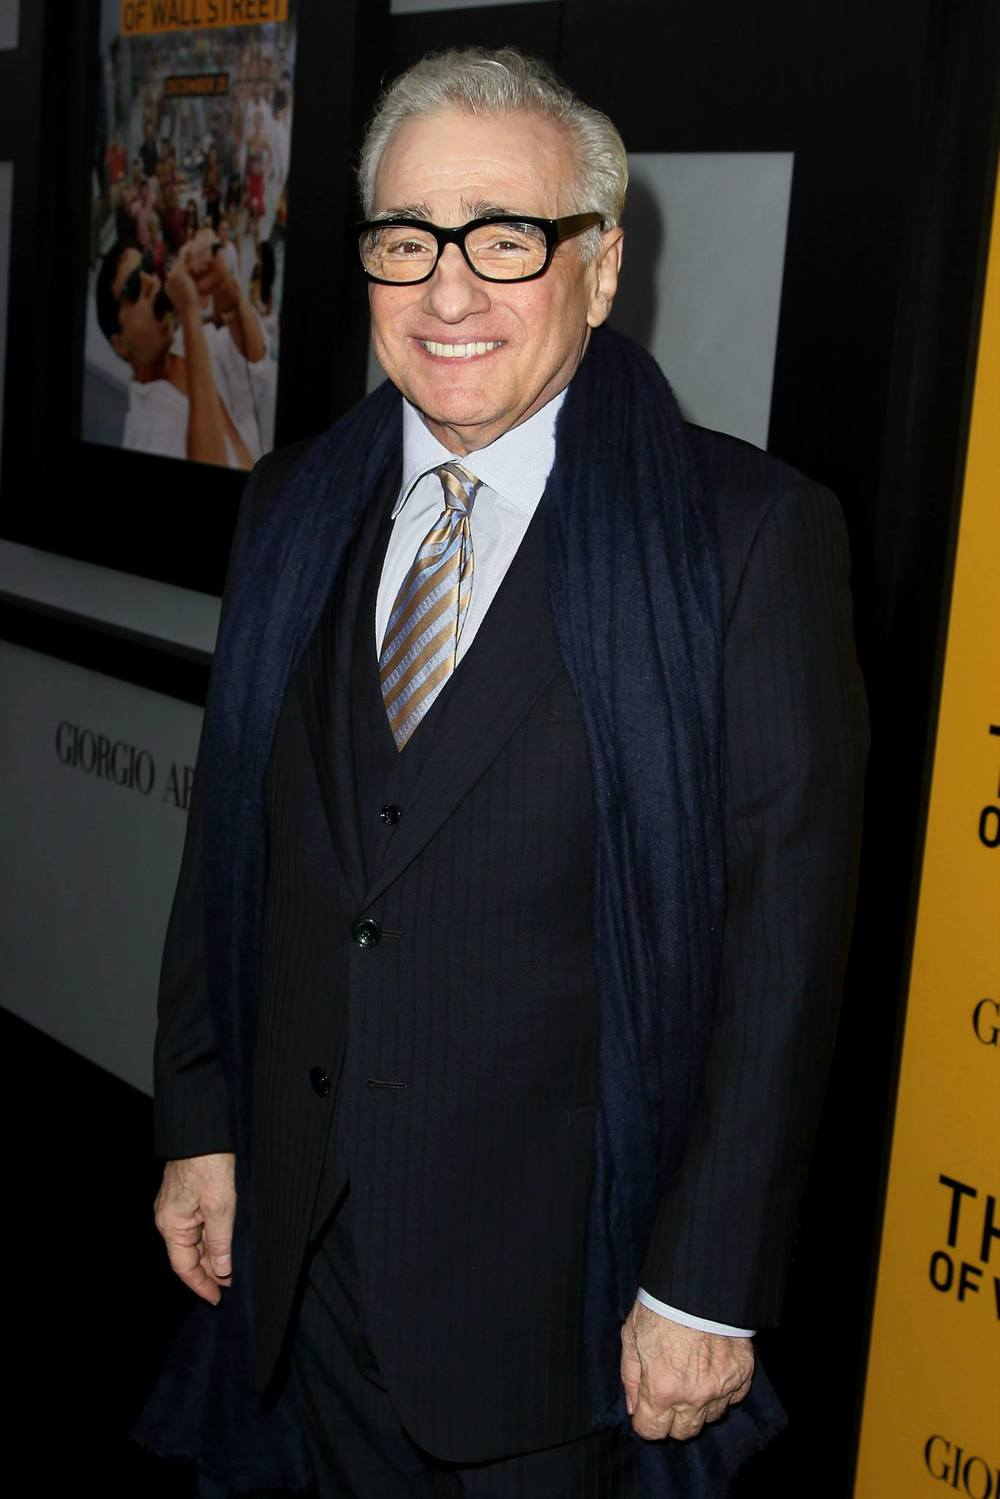 director-martin-scorsese-at-the-new-york-city-premiere-of-the-wolf-of-wall-street-red-granite-pictures-red-granite-international.jpg